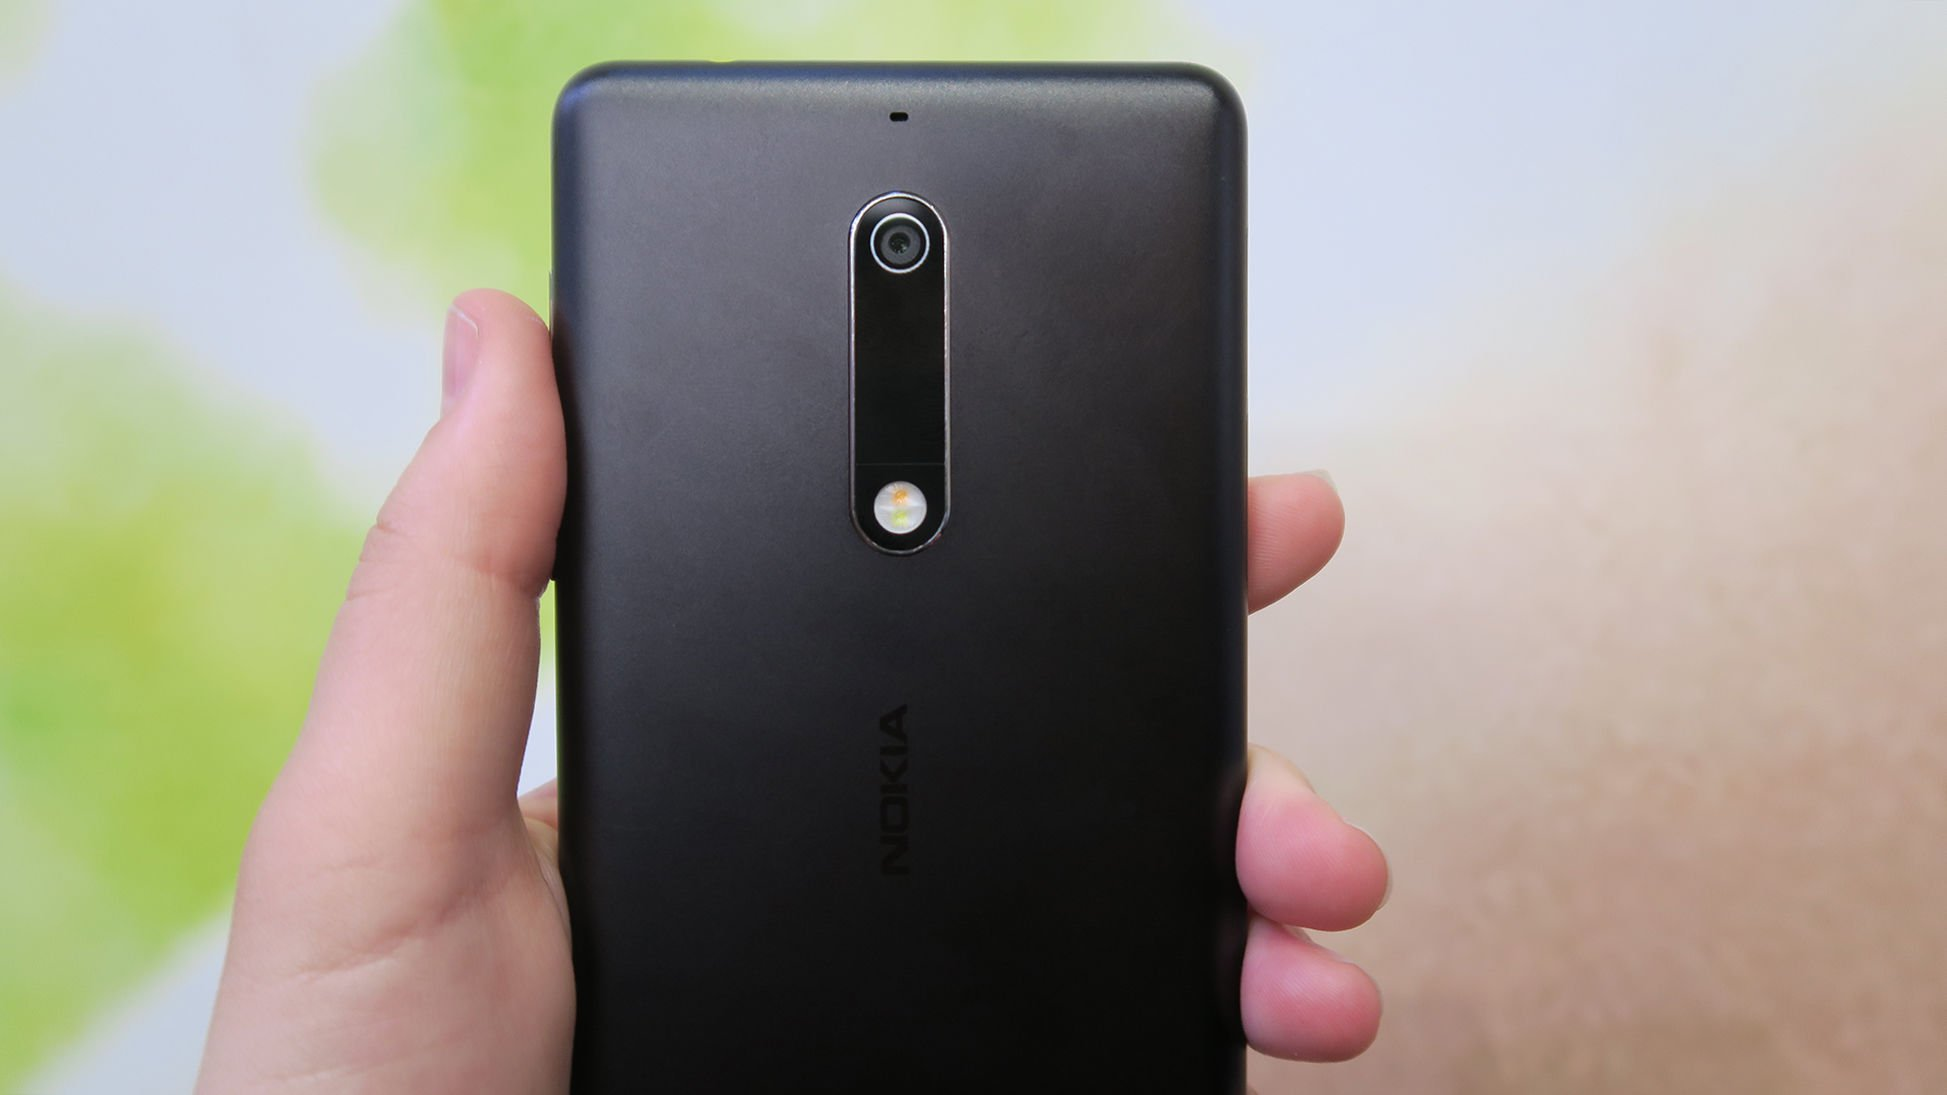 nokia 5 review. when it comes to cameras, the nokia 5 has a 13mp camera on rear with dual tone flash, while front-facing offers 8mp for selfies. review